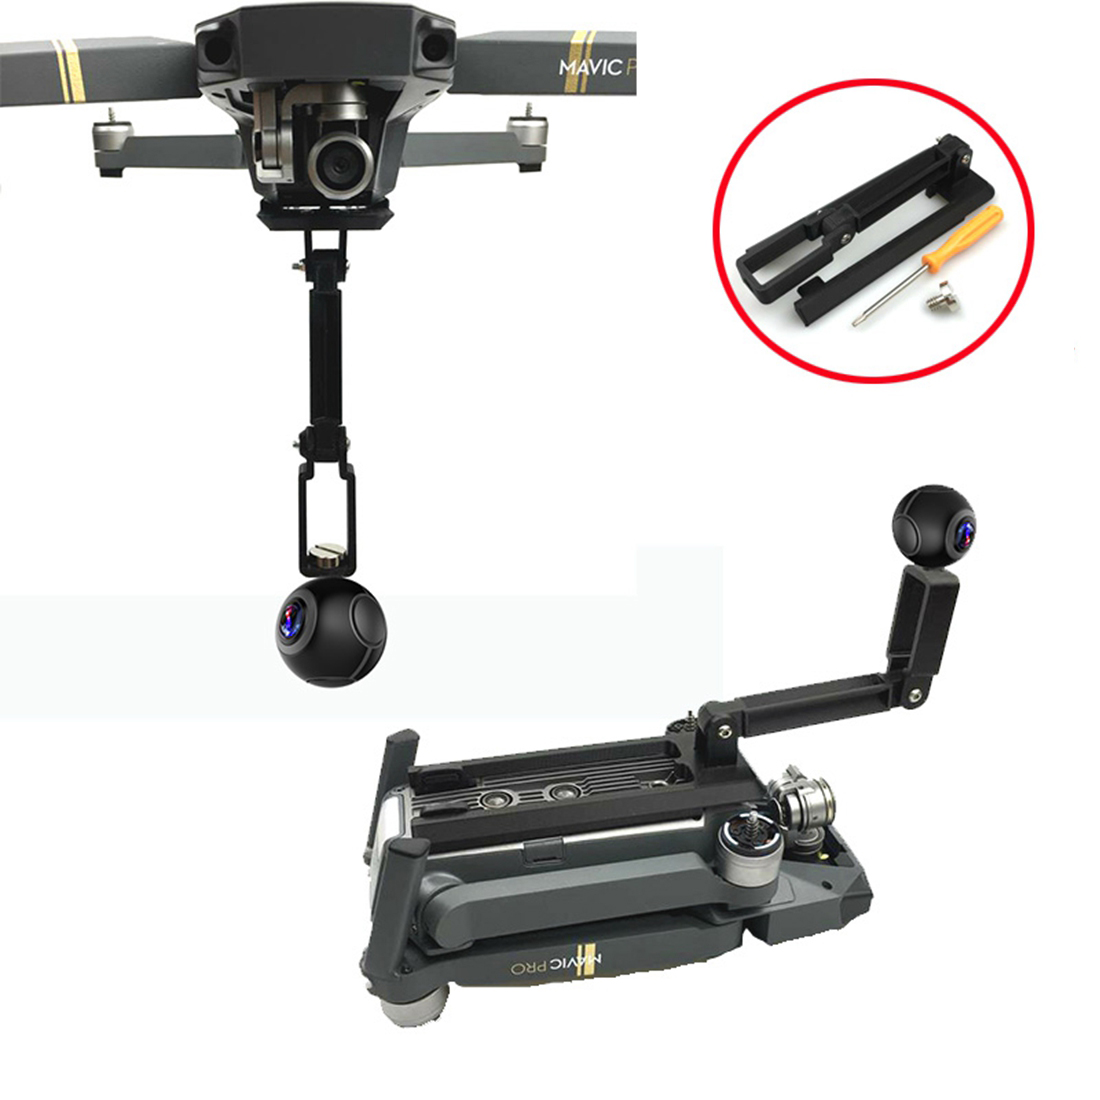 HOBBYINRC For Gopro Hero 5 4 3 Action Sports Camera 360 Degree Mount Bracket Holder Tripod support 1/4 Base for DJI Mavic Pro 3pcs lot tripod mount adapter mini tripod holder accessory mount bracket adapter for gopro hero 4 3 3 2 1 sj4000 sport camera